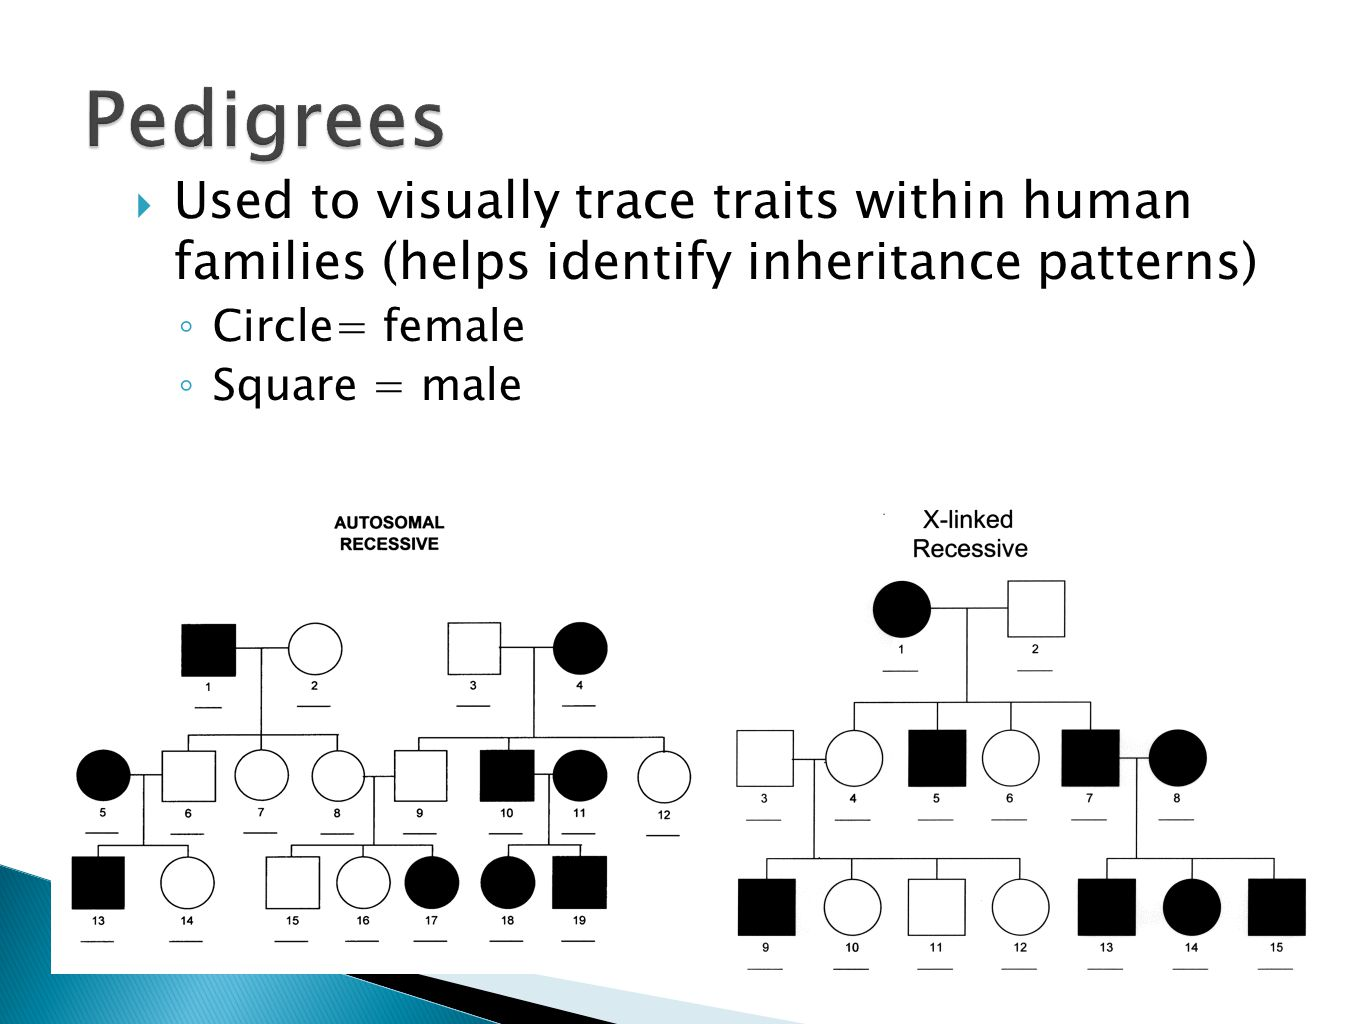  Used to visually trace traits within human families (helps identify inheritance patterns) ◦ Circle= female ◦ Square = male